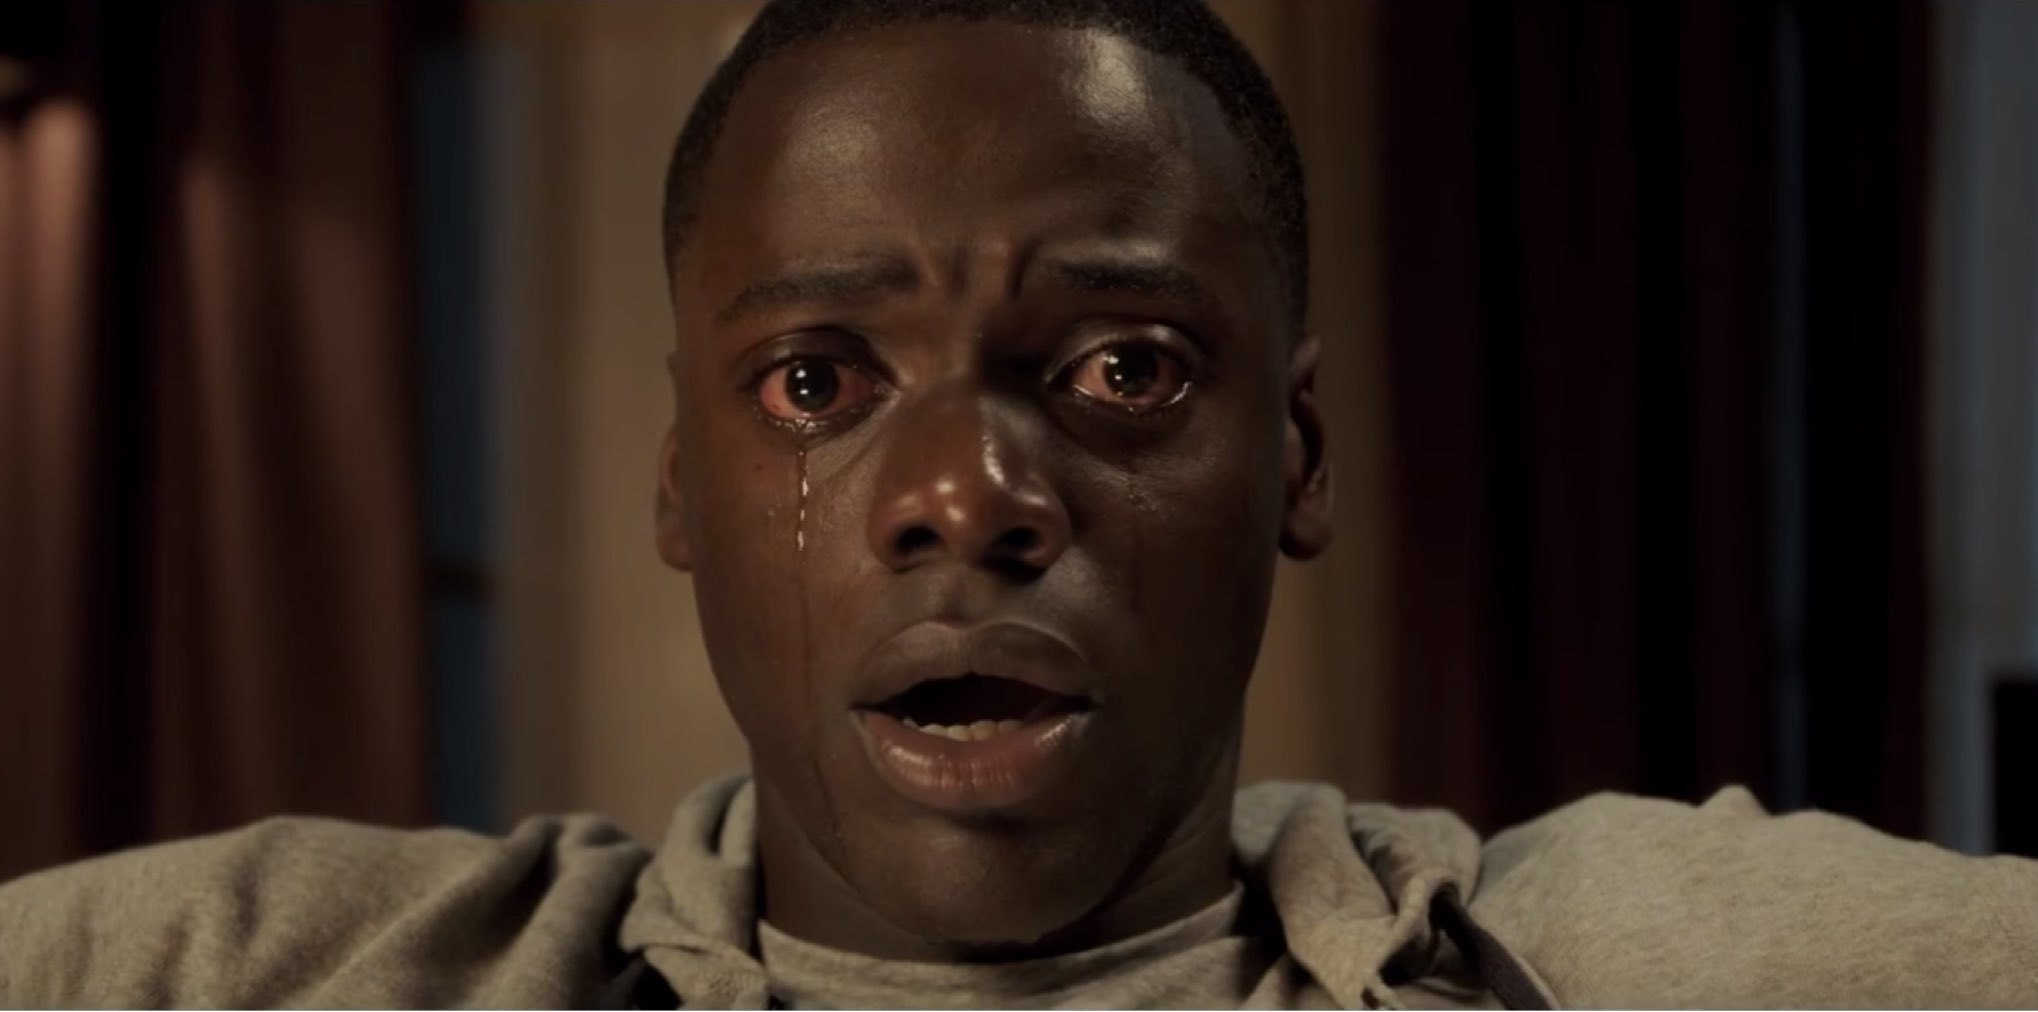 "1. GET OUT | Directed by Jordan Peele | Release Date: February 24, 2017   Jordan Peele's directorial debut,  Get Out,  radiates brilliance. It is a fearless, ambitious, bold psychological suspense/horror film that balances deft comedy flourishes with palpable intensity, moments of honest psychological horror, and great suspense. Quite simply, he has delivered one of the finest debut films of recent memory.  Moreover,  Get Out  is just exceptionally well made in every way. Serving up an outlandish and exaggerated premise, commonplace with domestic horror films, he slowly turns the camera around on us, the viewers, forcing us to ask difficult questions about our perceptions and values, allowing us to openly wonder why we are reacting and responding to the images and developments he places before us.  The late author and journalist, Molly Ivins, once wrote that ""satire is traditionally the weapon of the powerless against the powerful,"" and Peele wields his weaponry (a pen, a camera, a voice) with such precision-like skill that it may take a minute before you realize he is wryly showing us who we have been and who we are.  Another quote comes to mind from British author Aldous Huxley: ""Facts do not cease to exist because they are ignored.""   Get Out , nearly one year after it's debut, still shakes people up. We are still discussing it in 2018. Come for the horror, stay for the horror of reality. We hear all the time how horror films are a reflection of society at large, and people bend over backwards finding ways to defend and elevate the genre, giving it depth and meaning.  Peele walks the walk and if you can't hear his message, perhaps you haven't been listening in the first place."